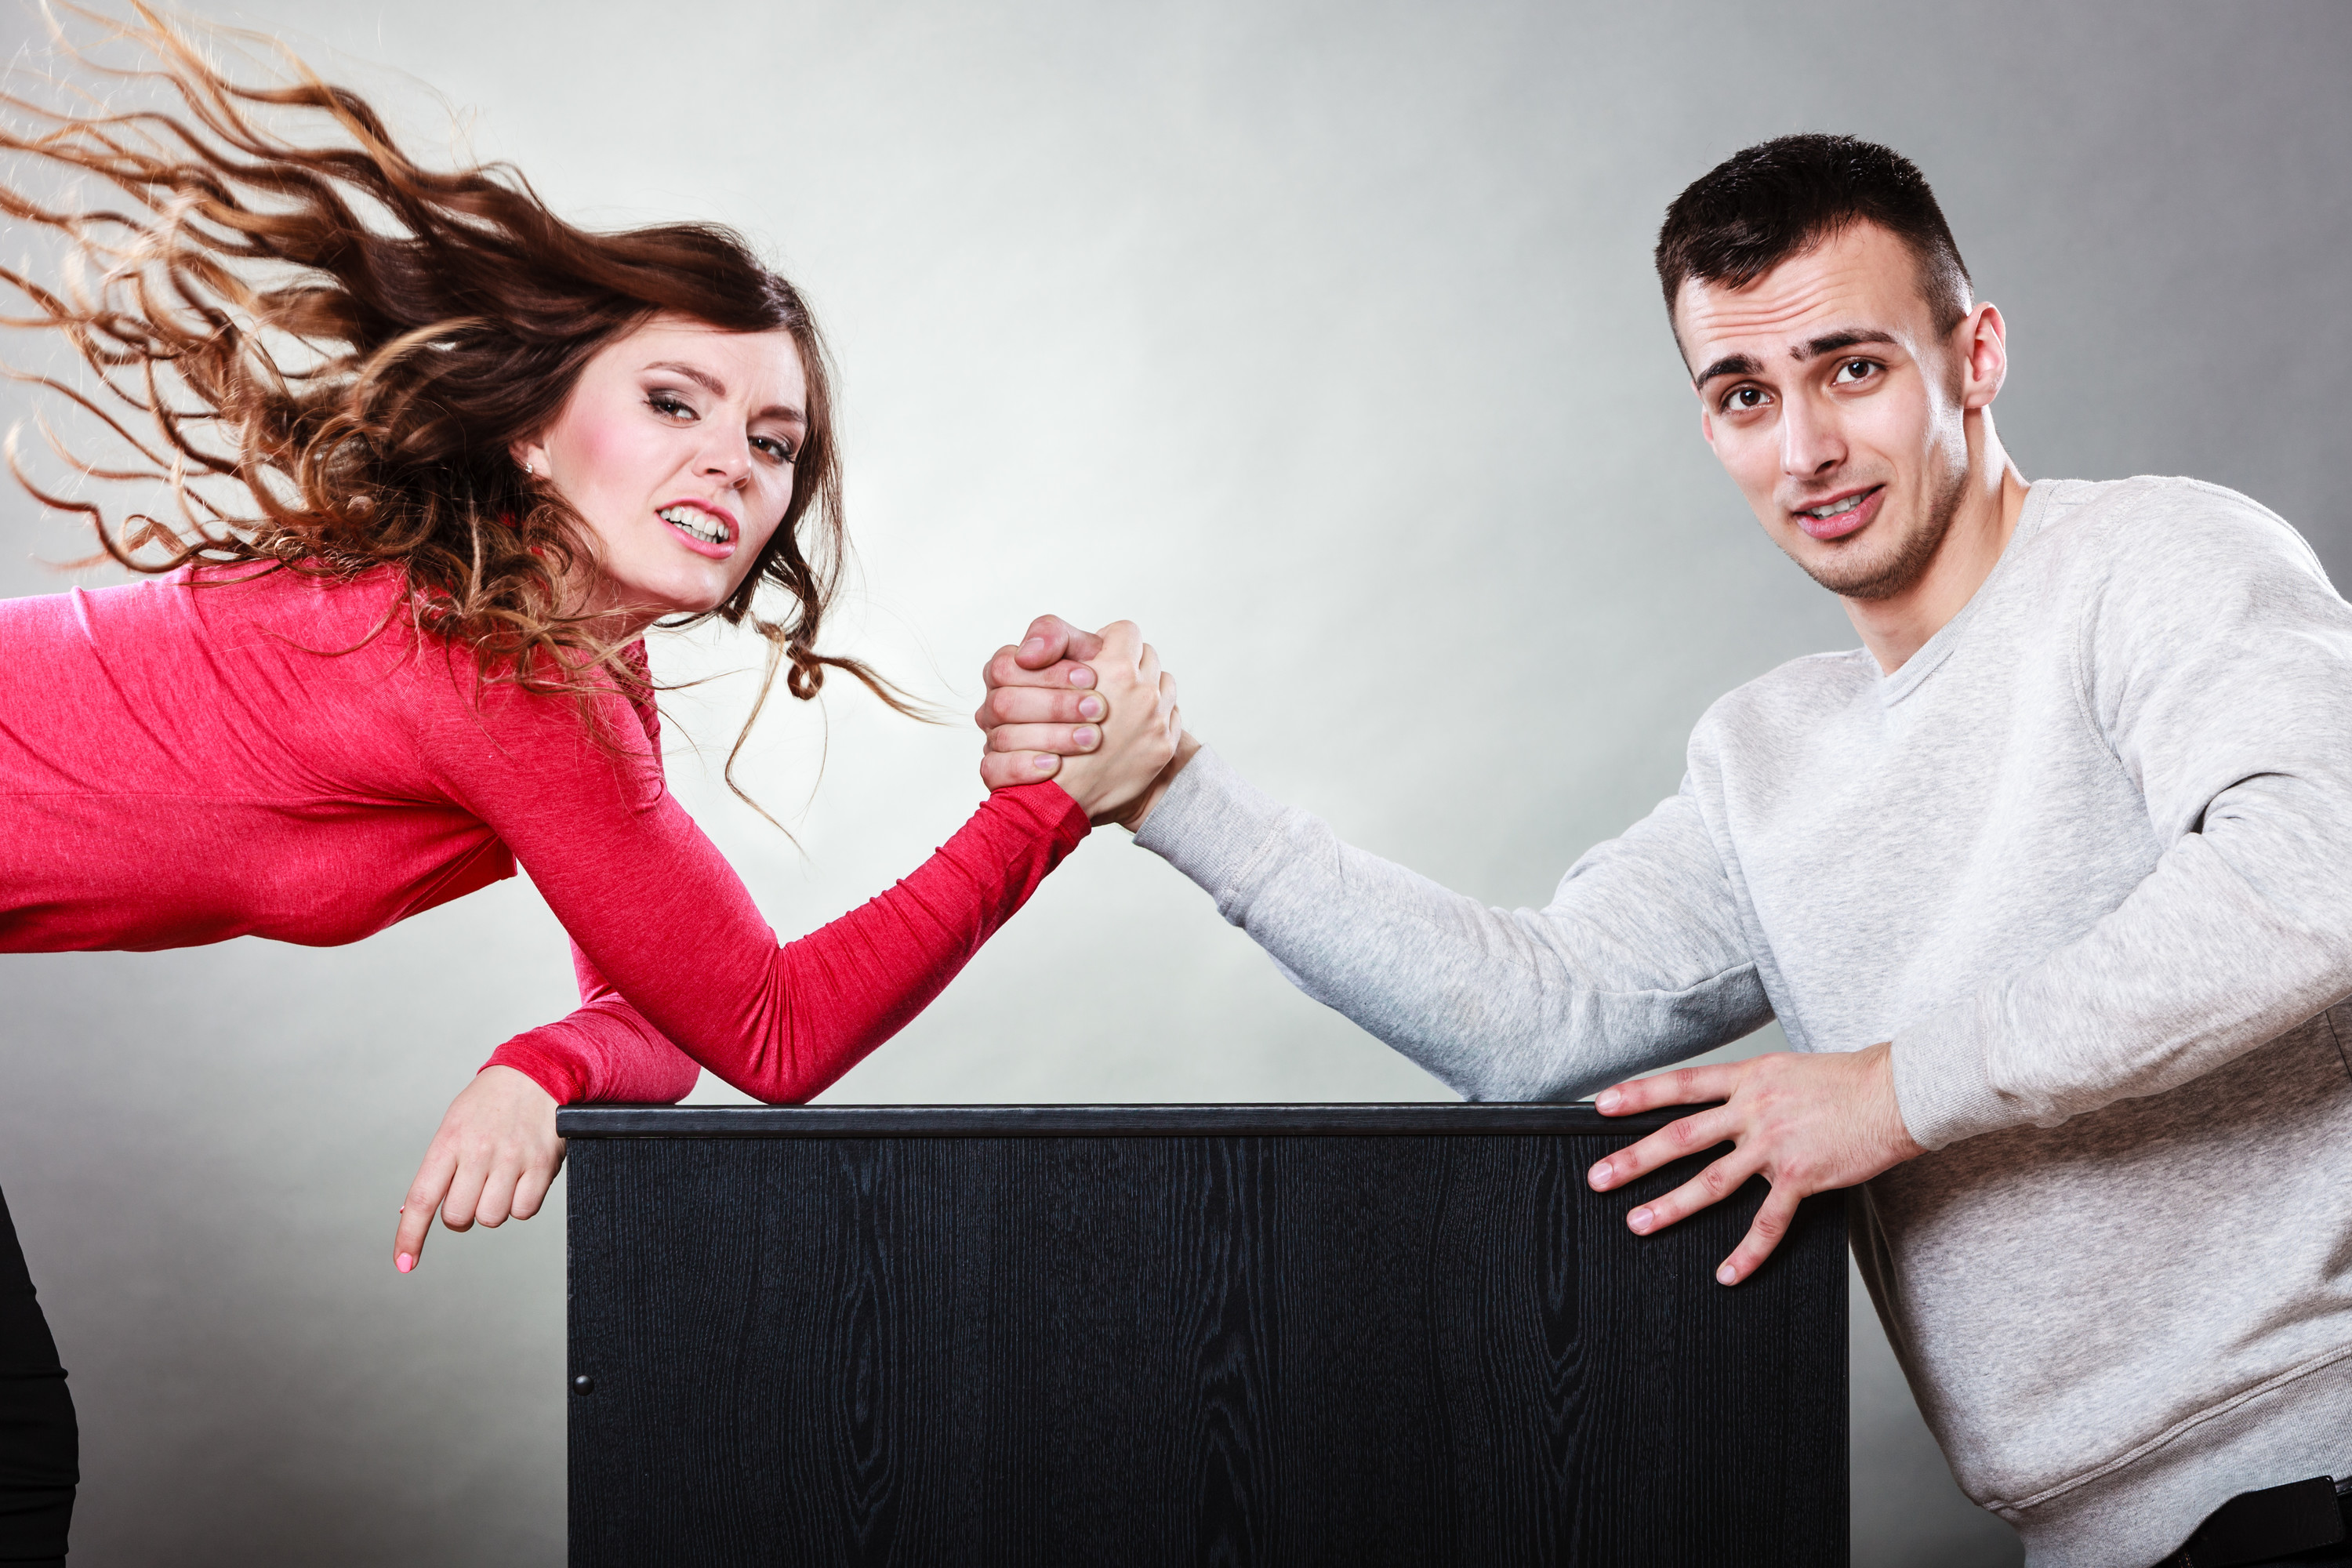 Get that house! 6 tips for competing against other homebuyers